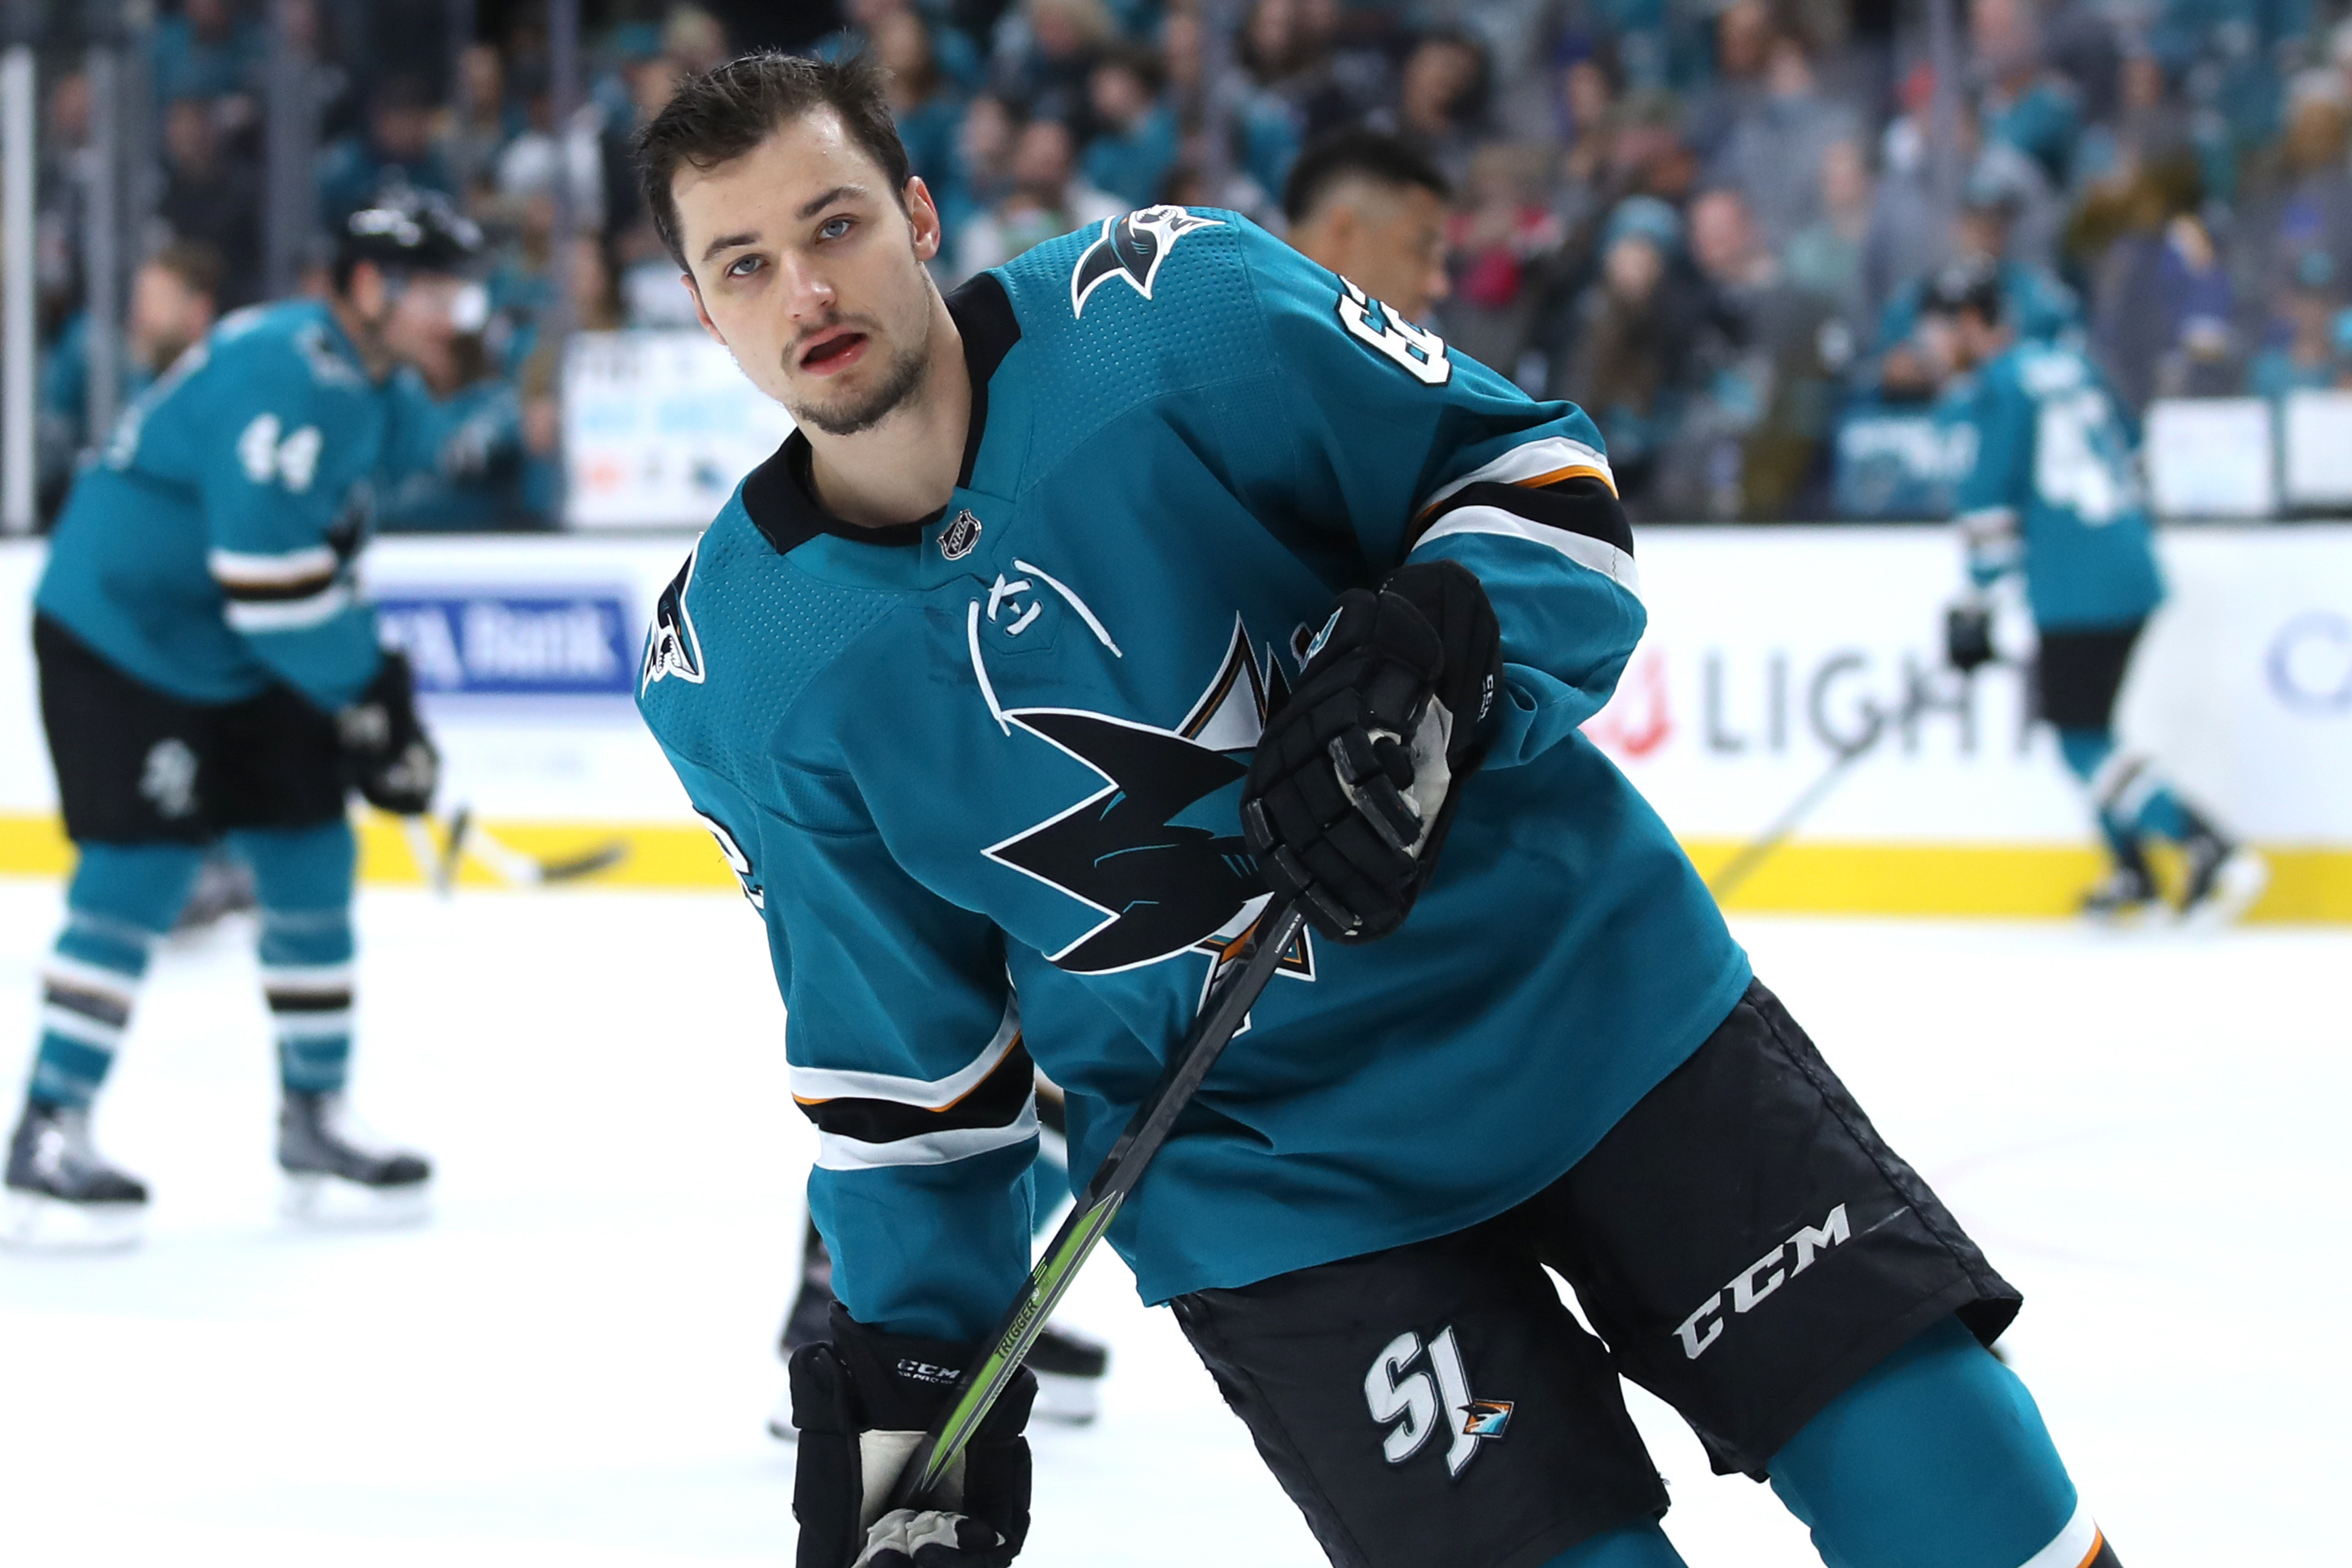 May 19, 2019; San Jose, CA, USA; San Jose Sharks right wing Kevin Labanc (62) skates on the ice before the game against the St. Louis Blues in Game 5 of the Western Conference Final of the 2019 Stanley Cup Playoffs at SAP Center at San Jose.